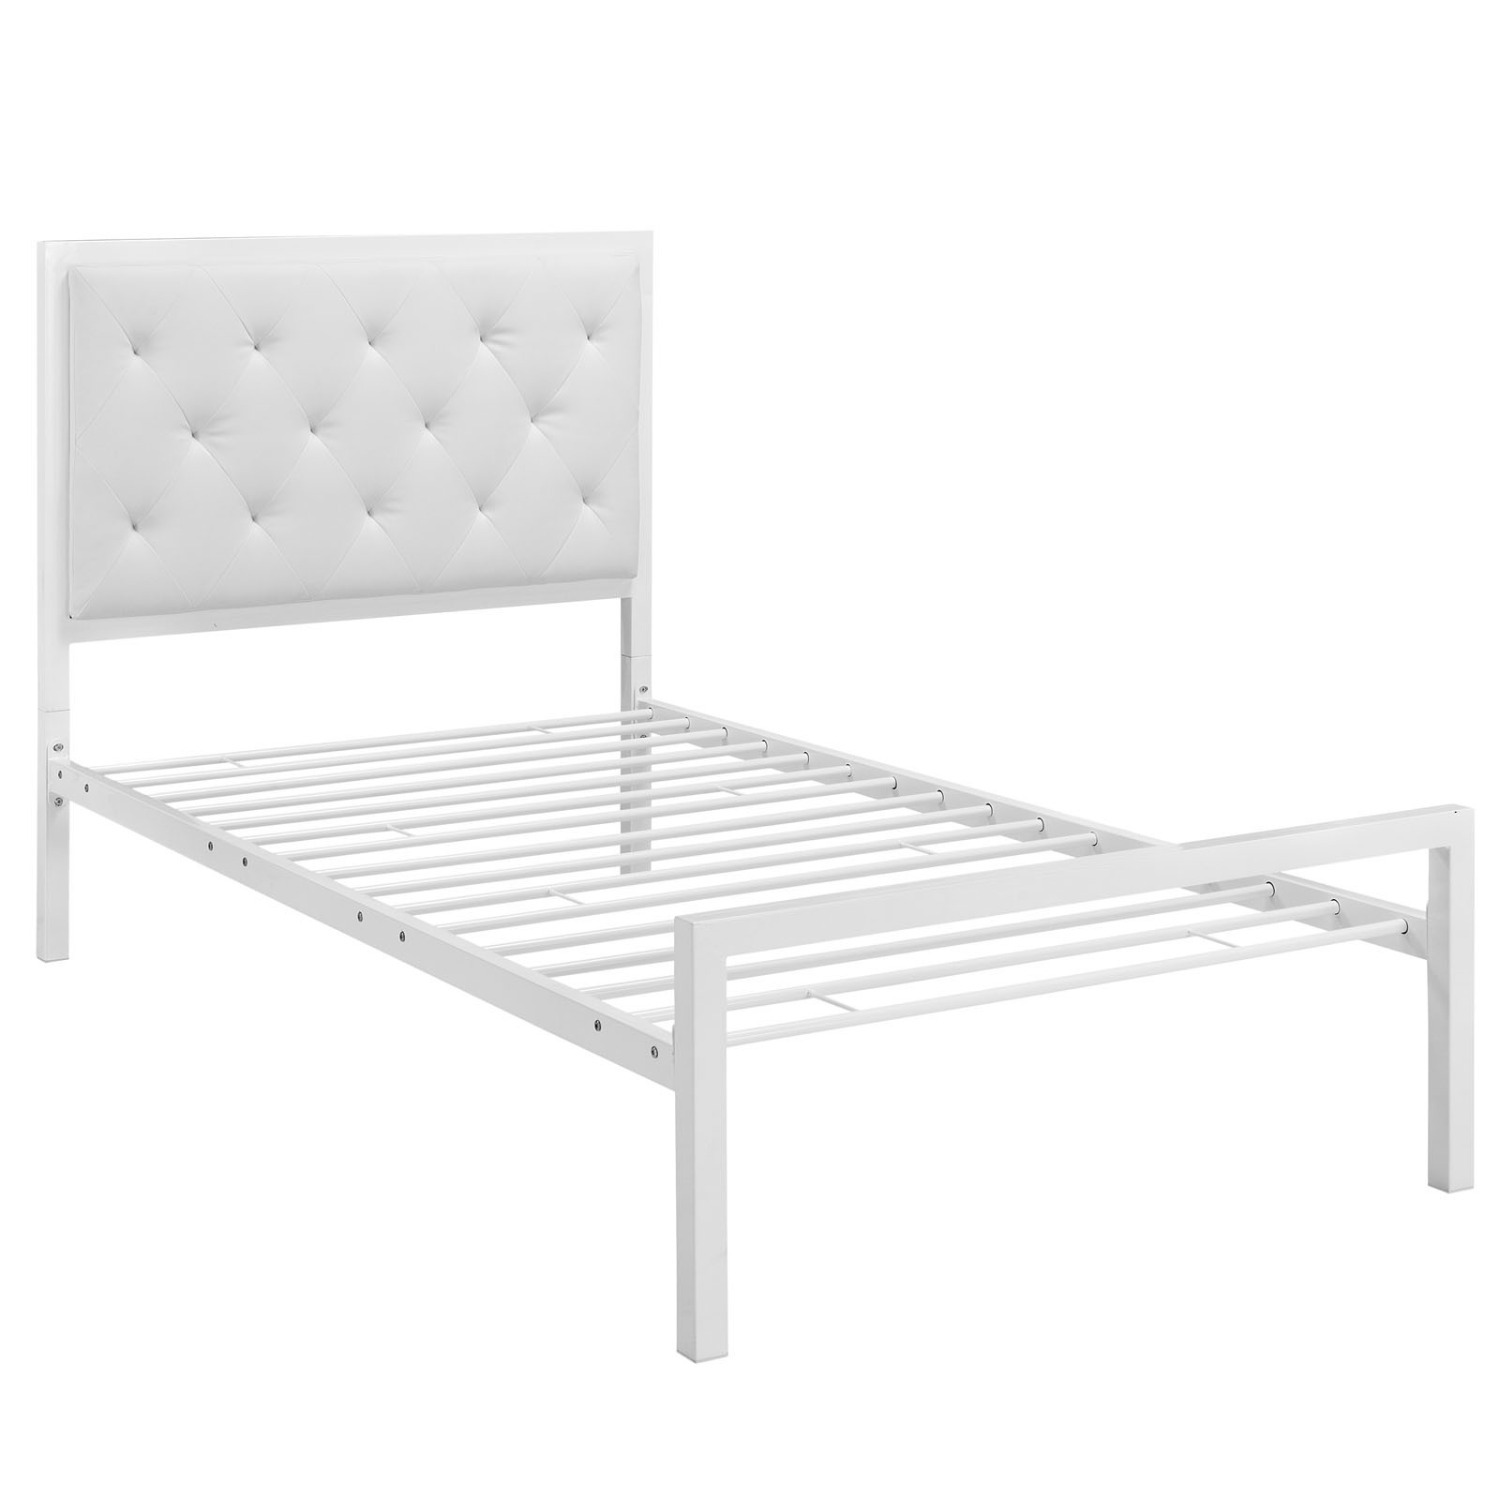 Twin Bed In White Steel Frame & Tufted Headboard - image-3